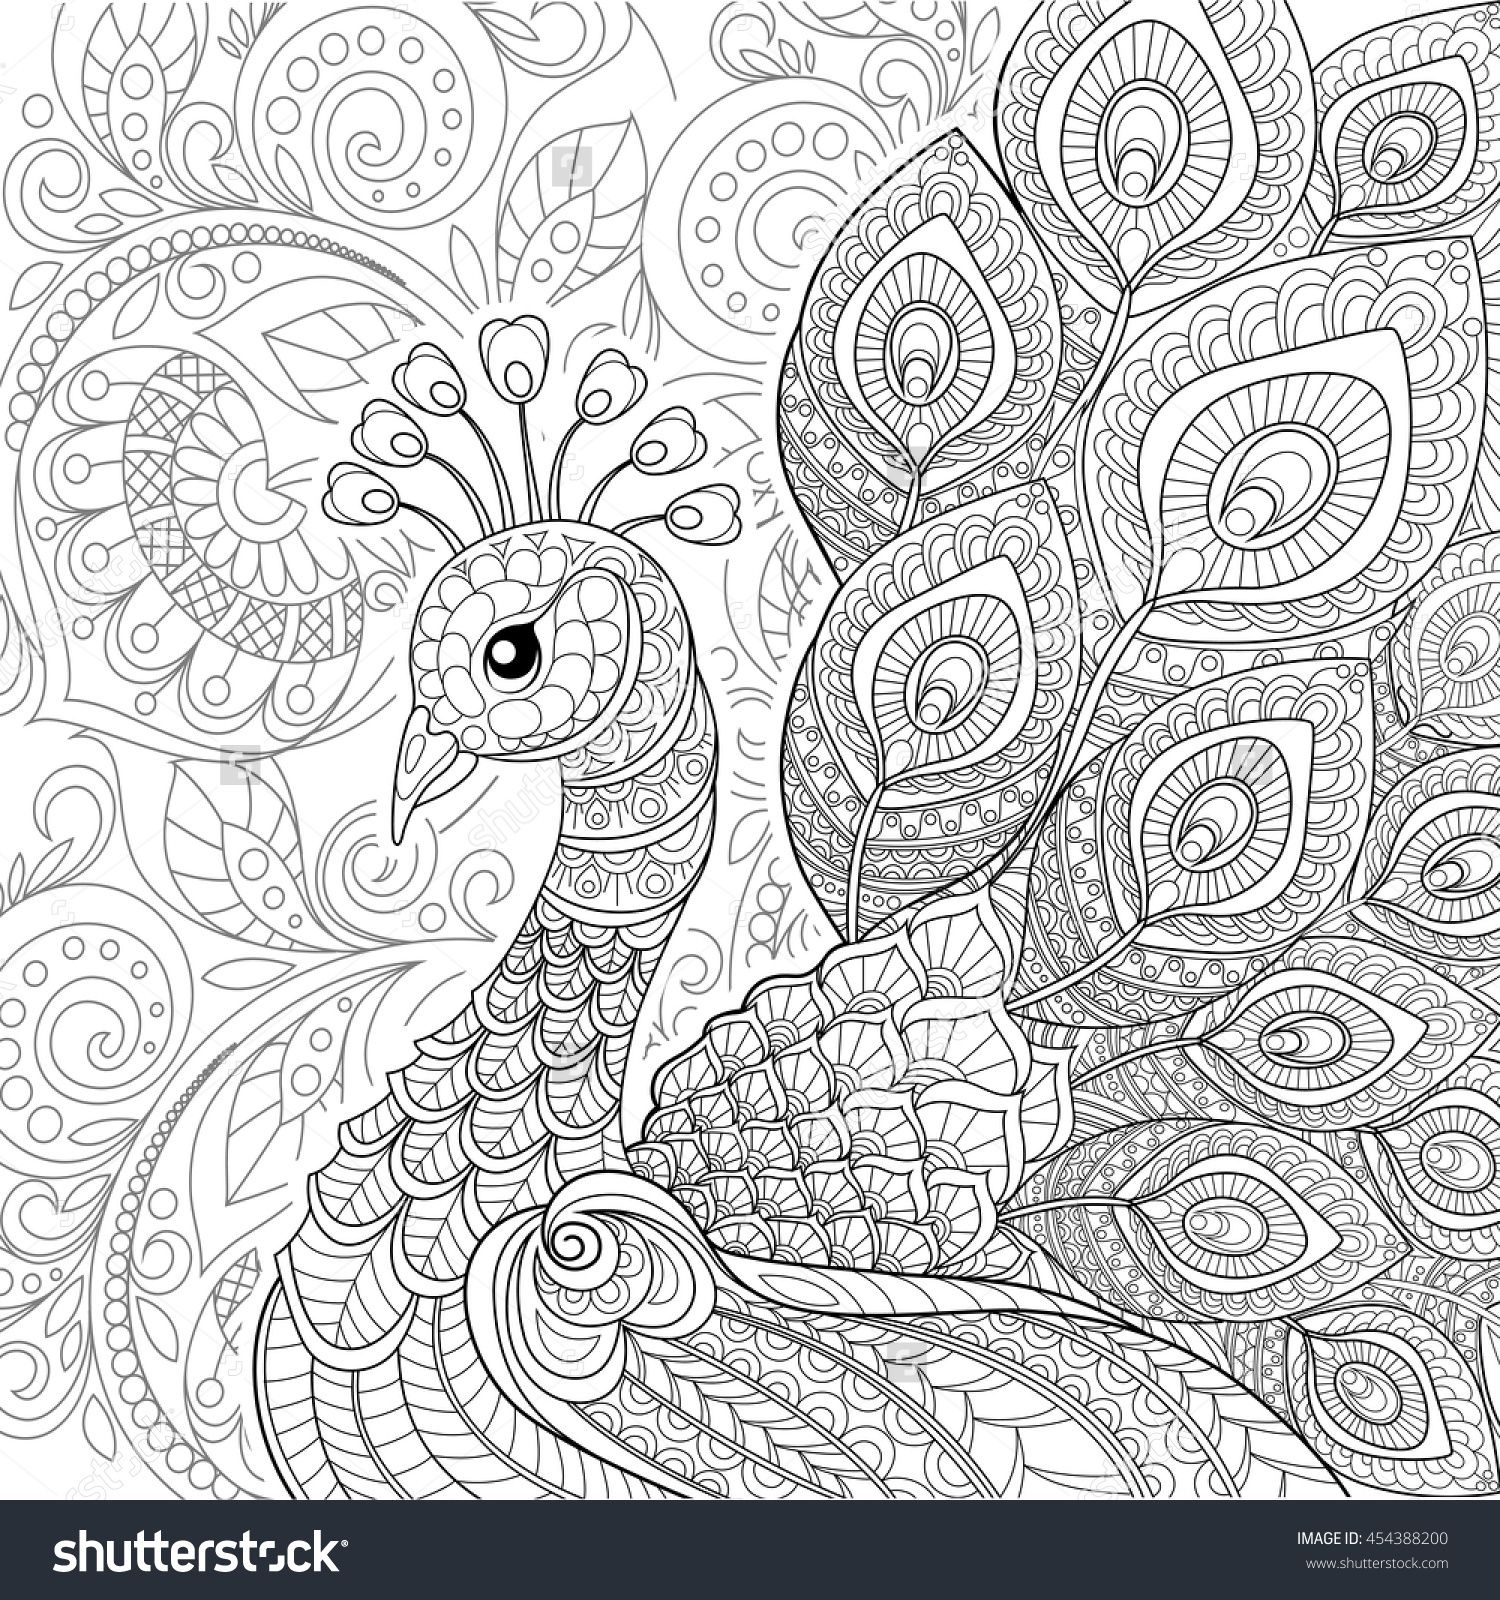 Peacock In Zentangle Style Adult Antistress Coloring Page Black